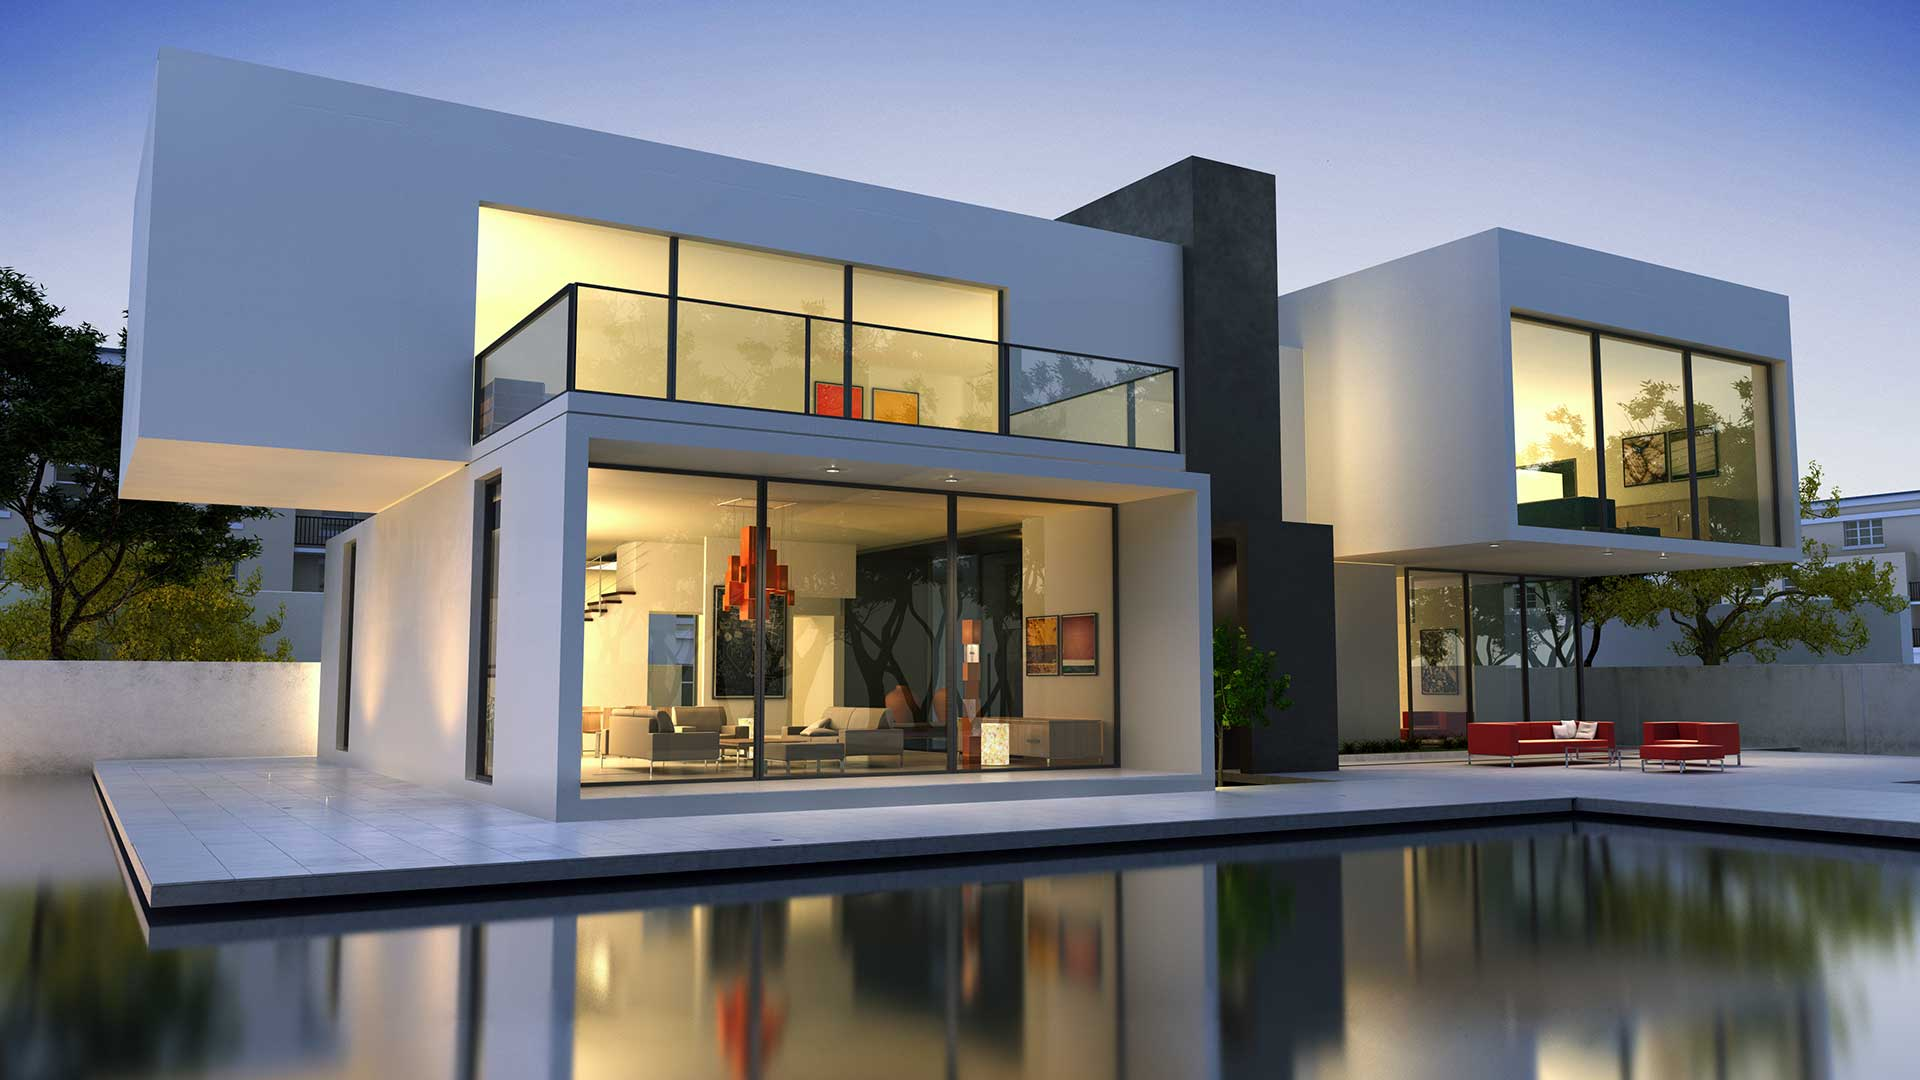 shg_hp_background_VILLA_MODERN_1920x1080